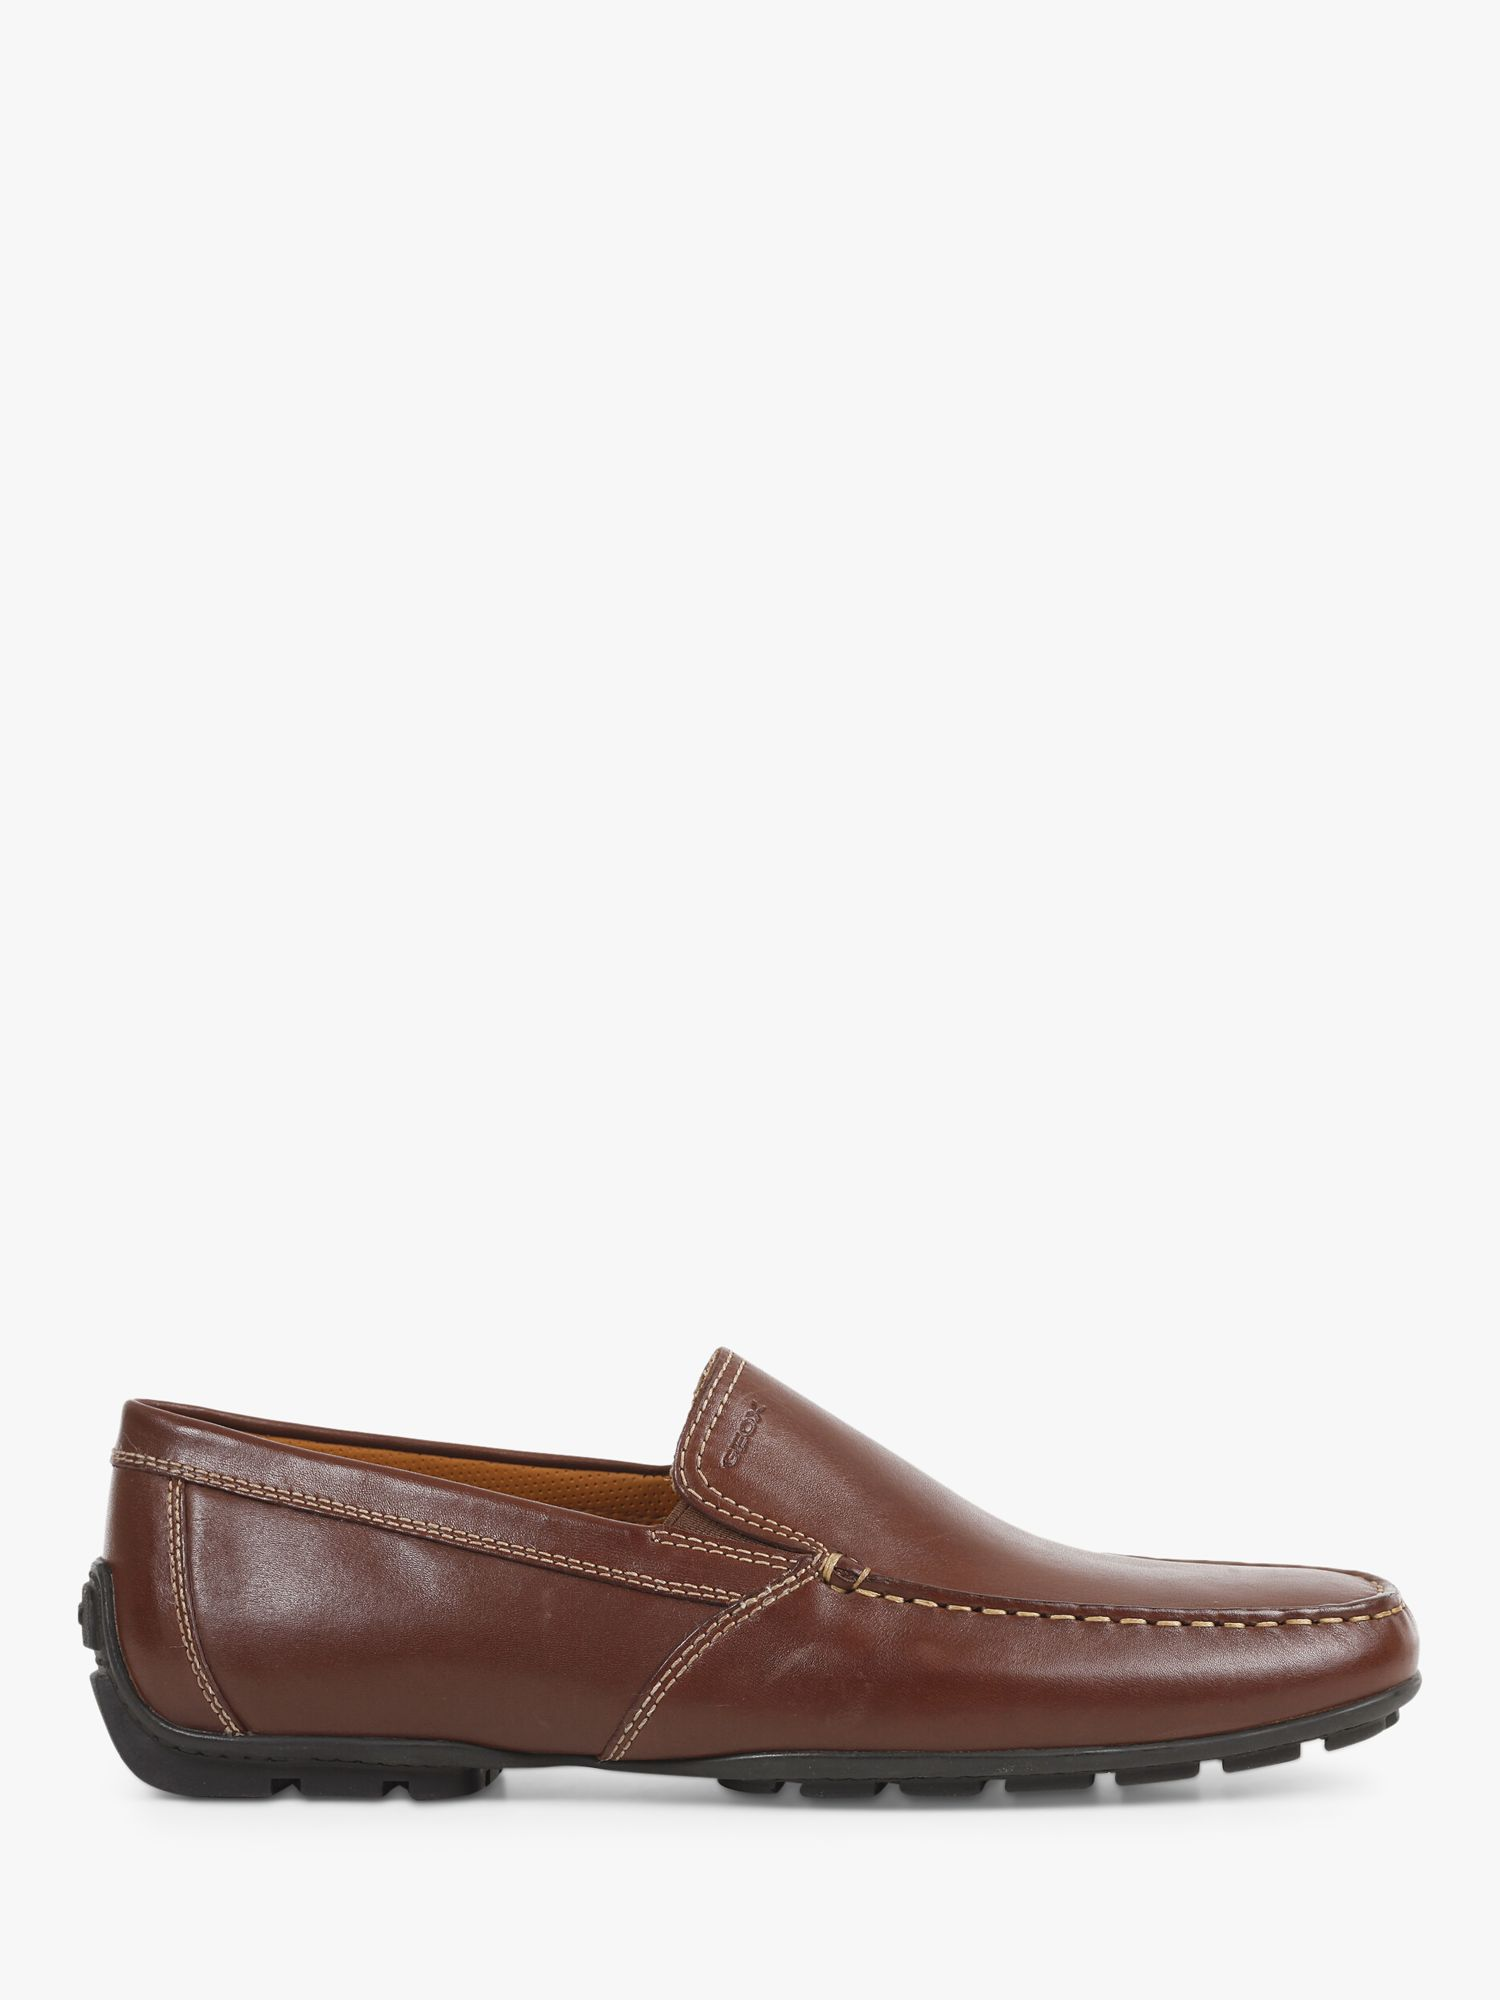 Geox Geox Moner Leather Loafers, Dark Brown